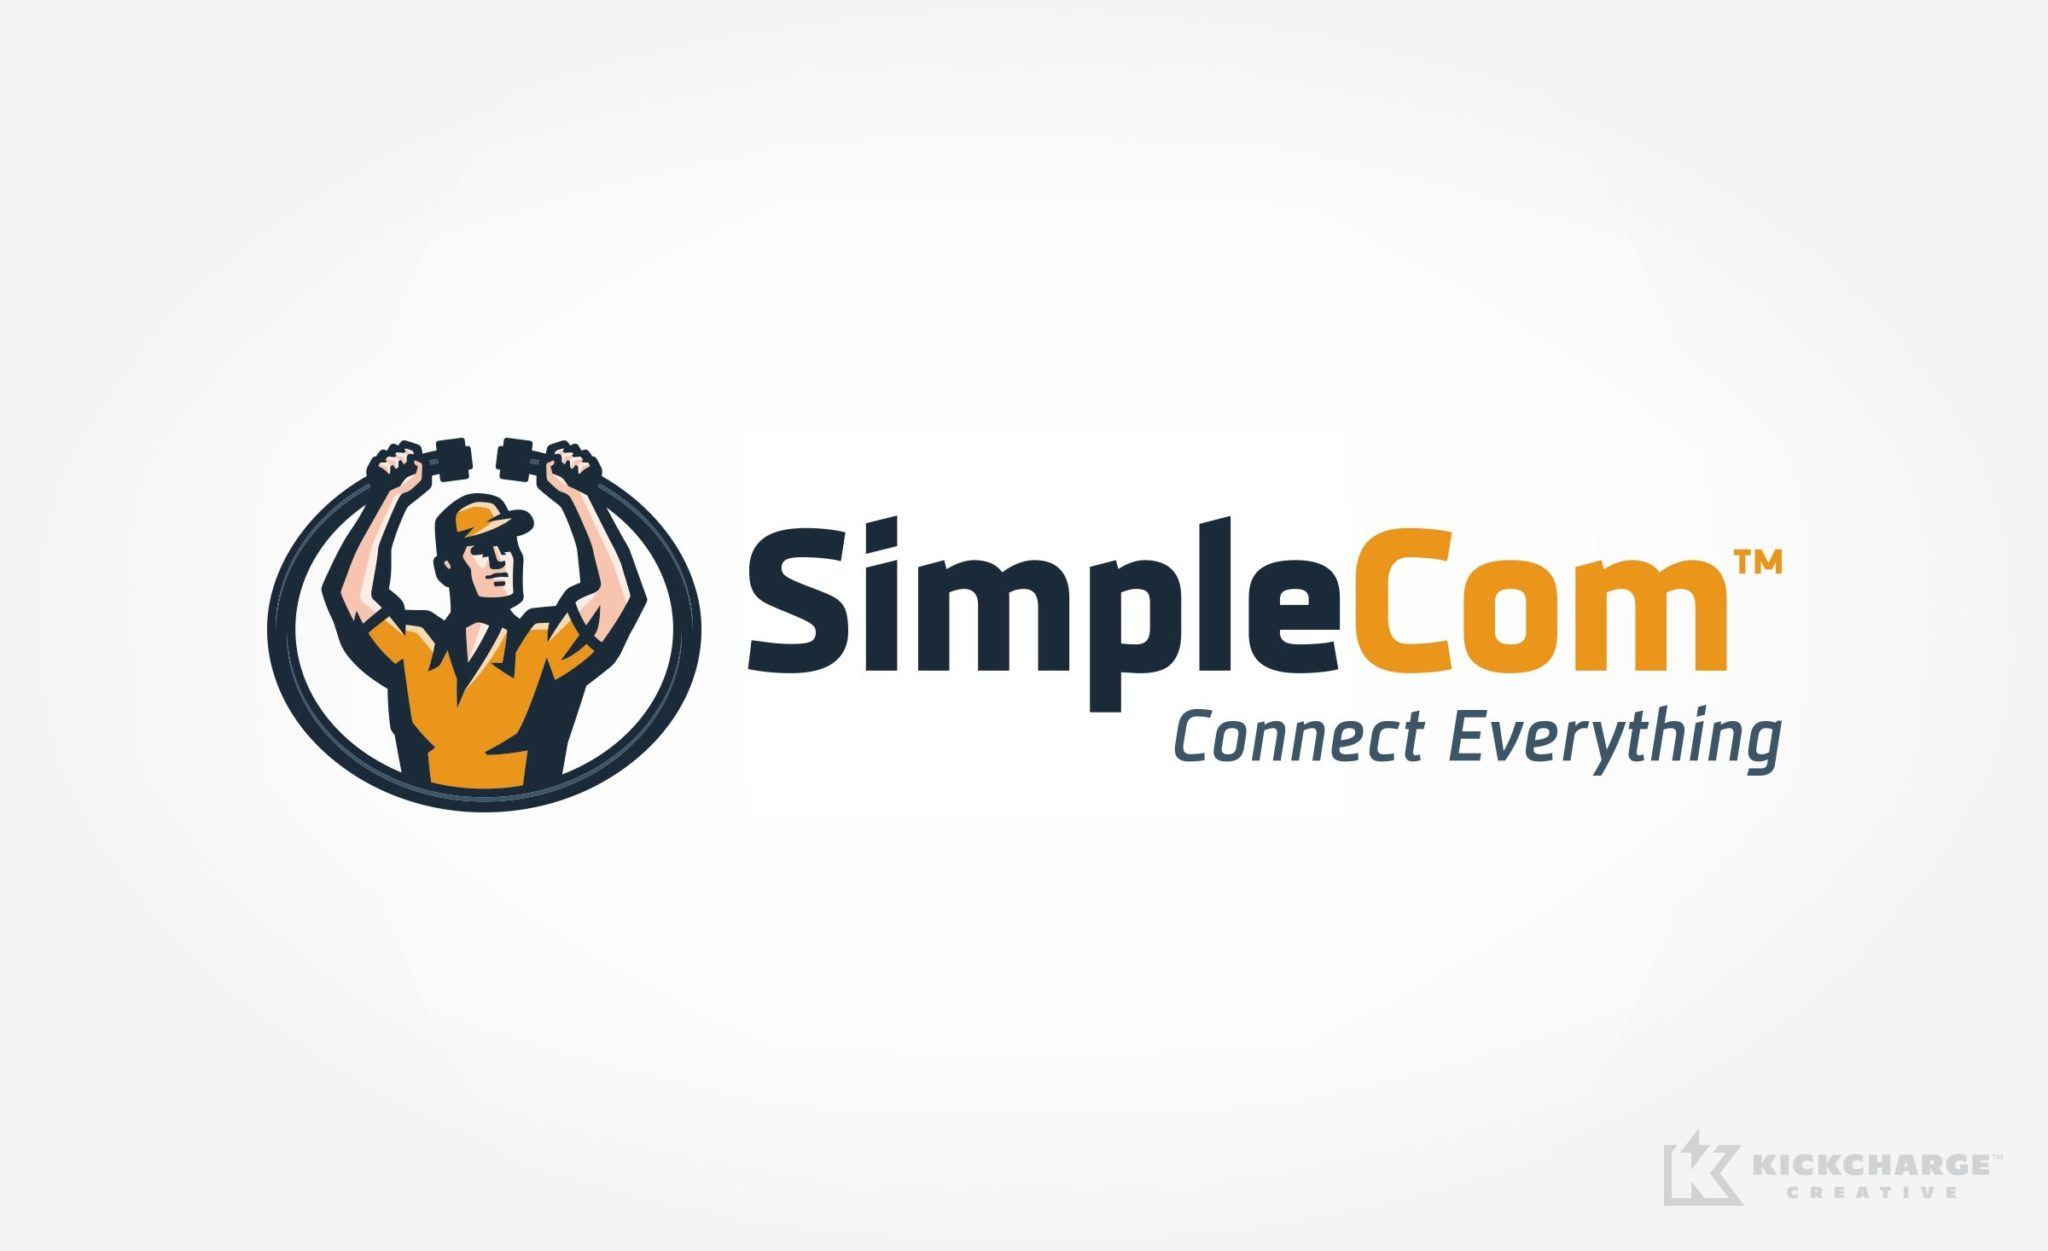 Logo Design for SimpleCom.